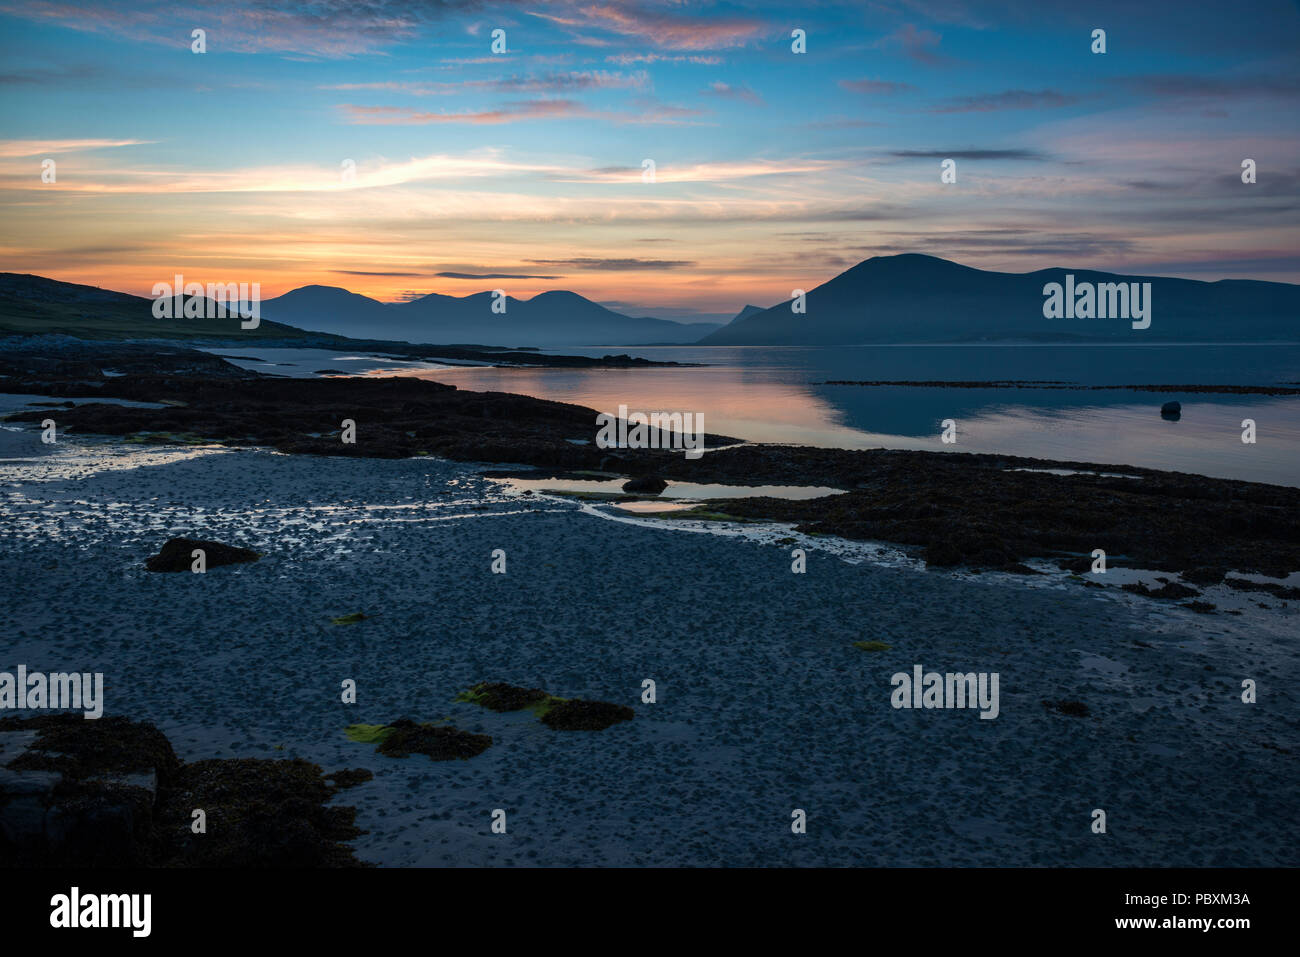 Paible beach on Taransay, Isle of Harris, Scotland, UK, Europe at sunset - Stock Image